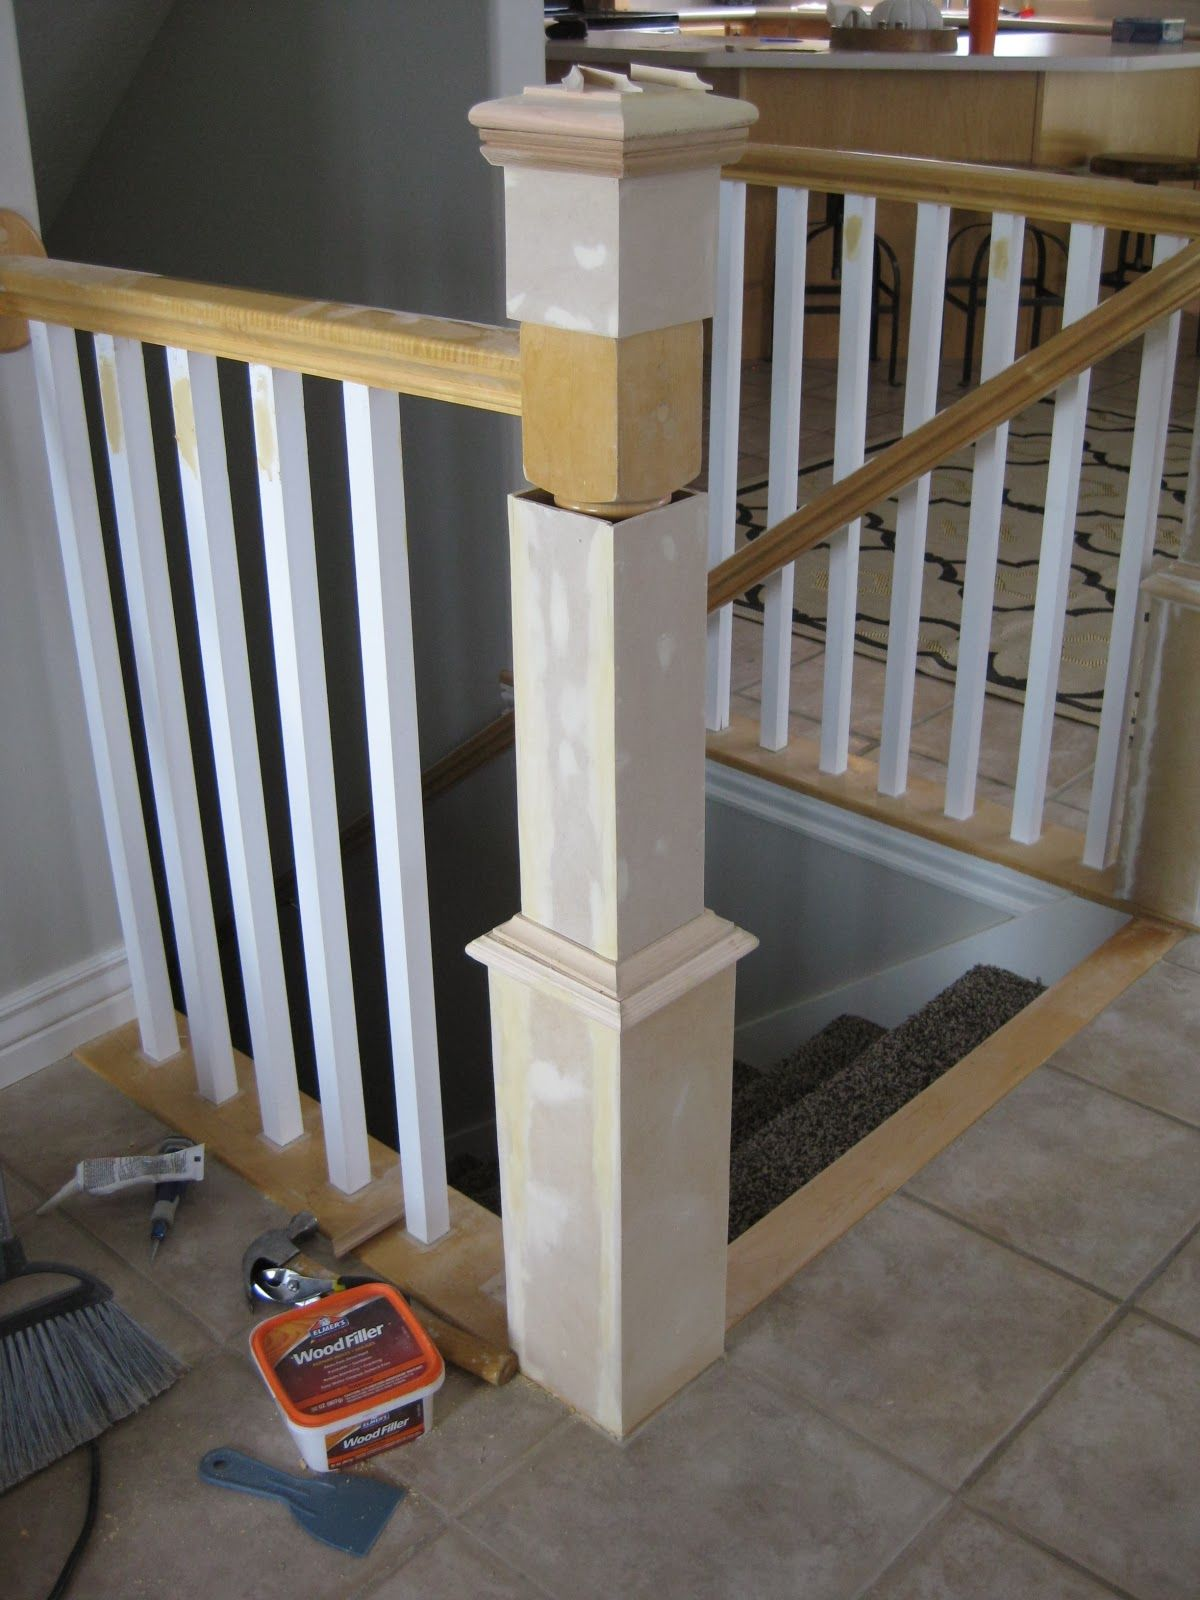 Wall Top Railings In Guildford: Update A Banister With DIY Newel Post And Spindles